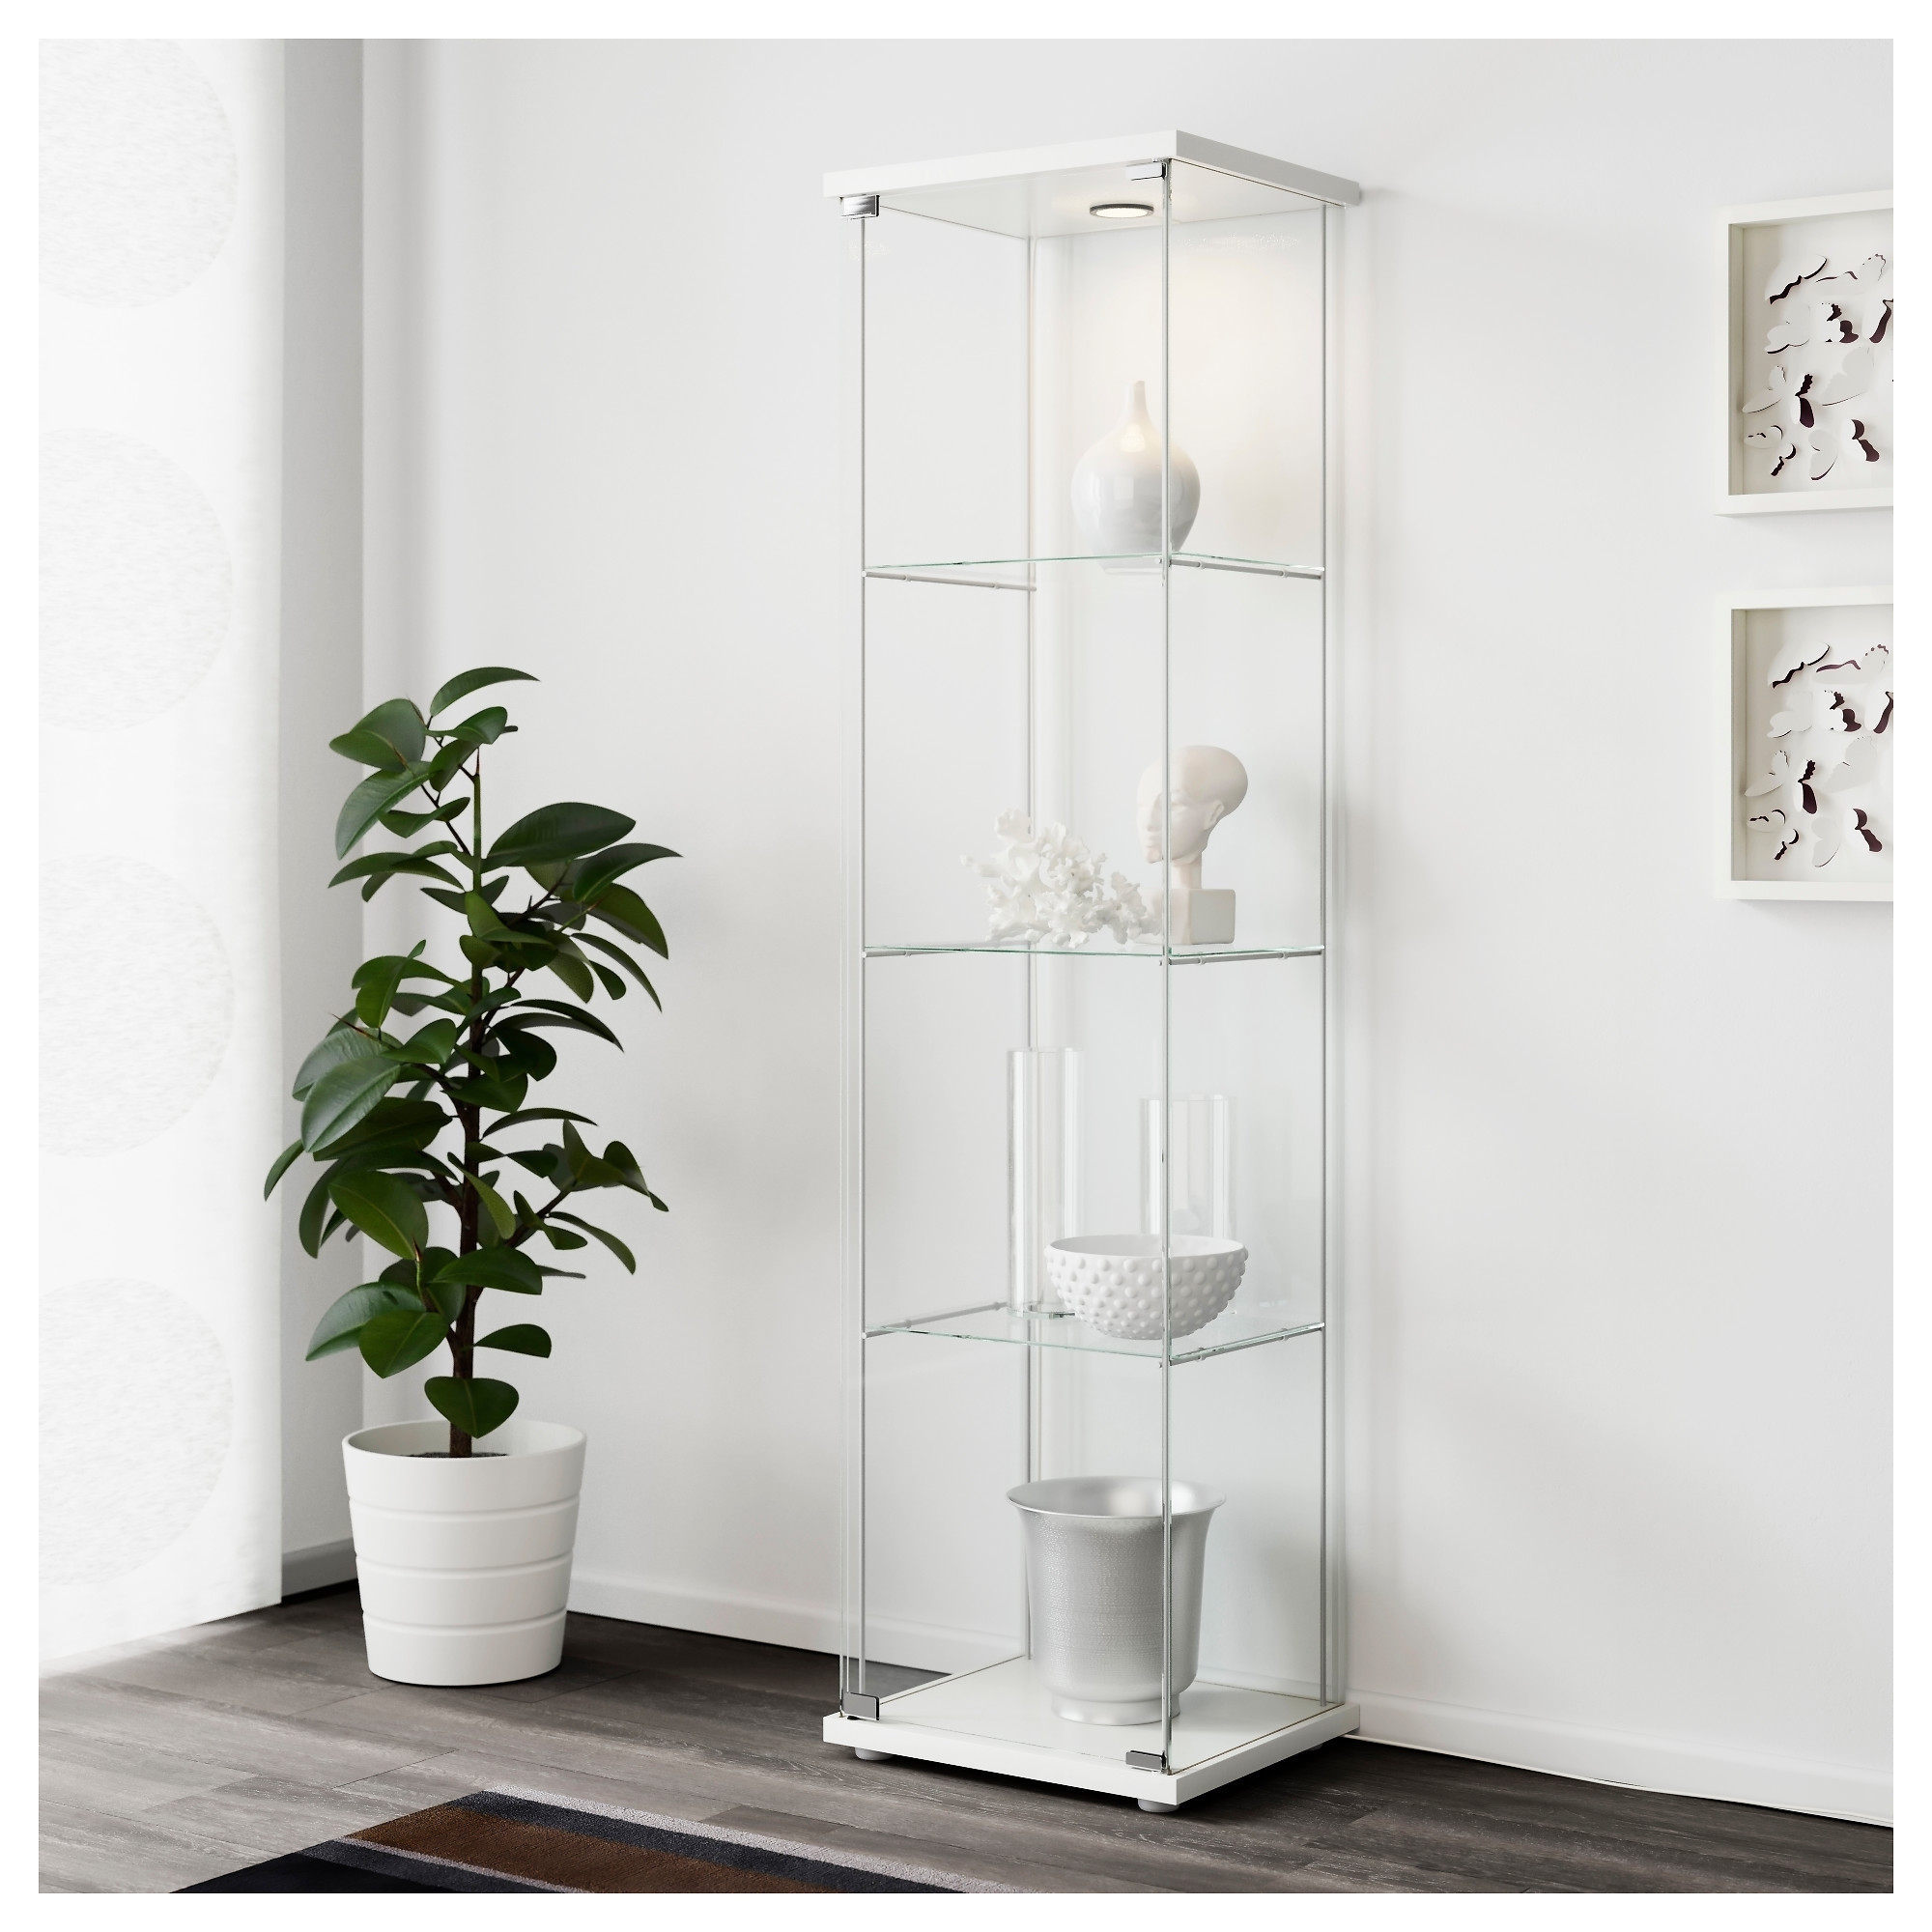 Superior DETOLF Glass Door Cabinet   White   IKEA